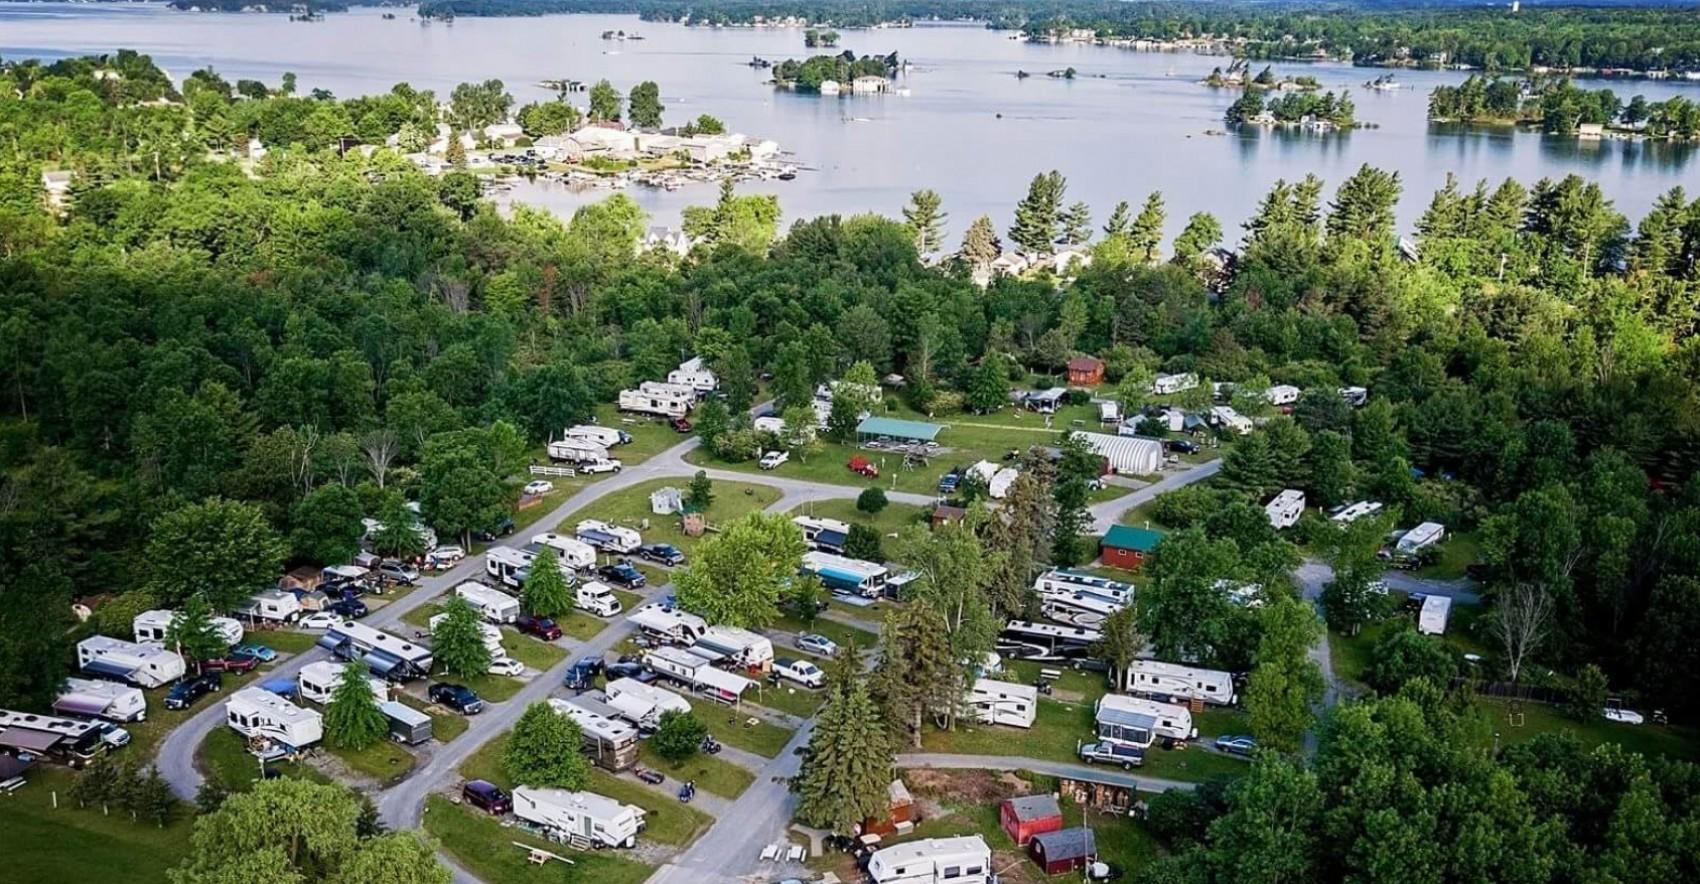 1000 Islands campground